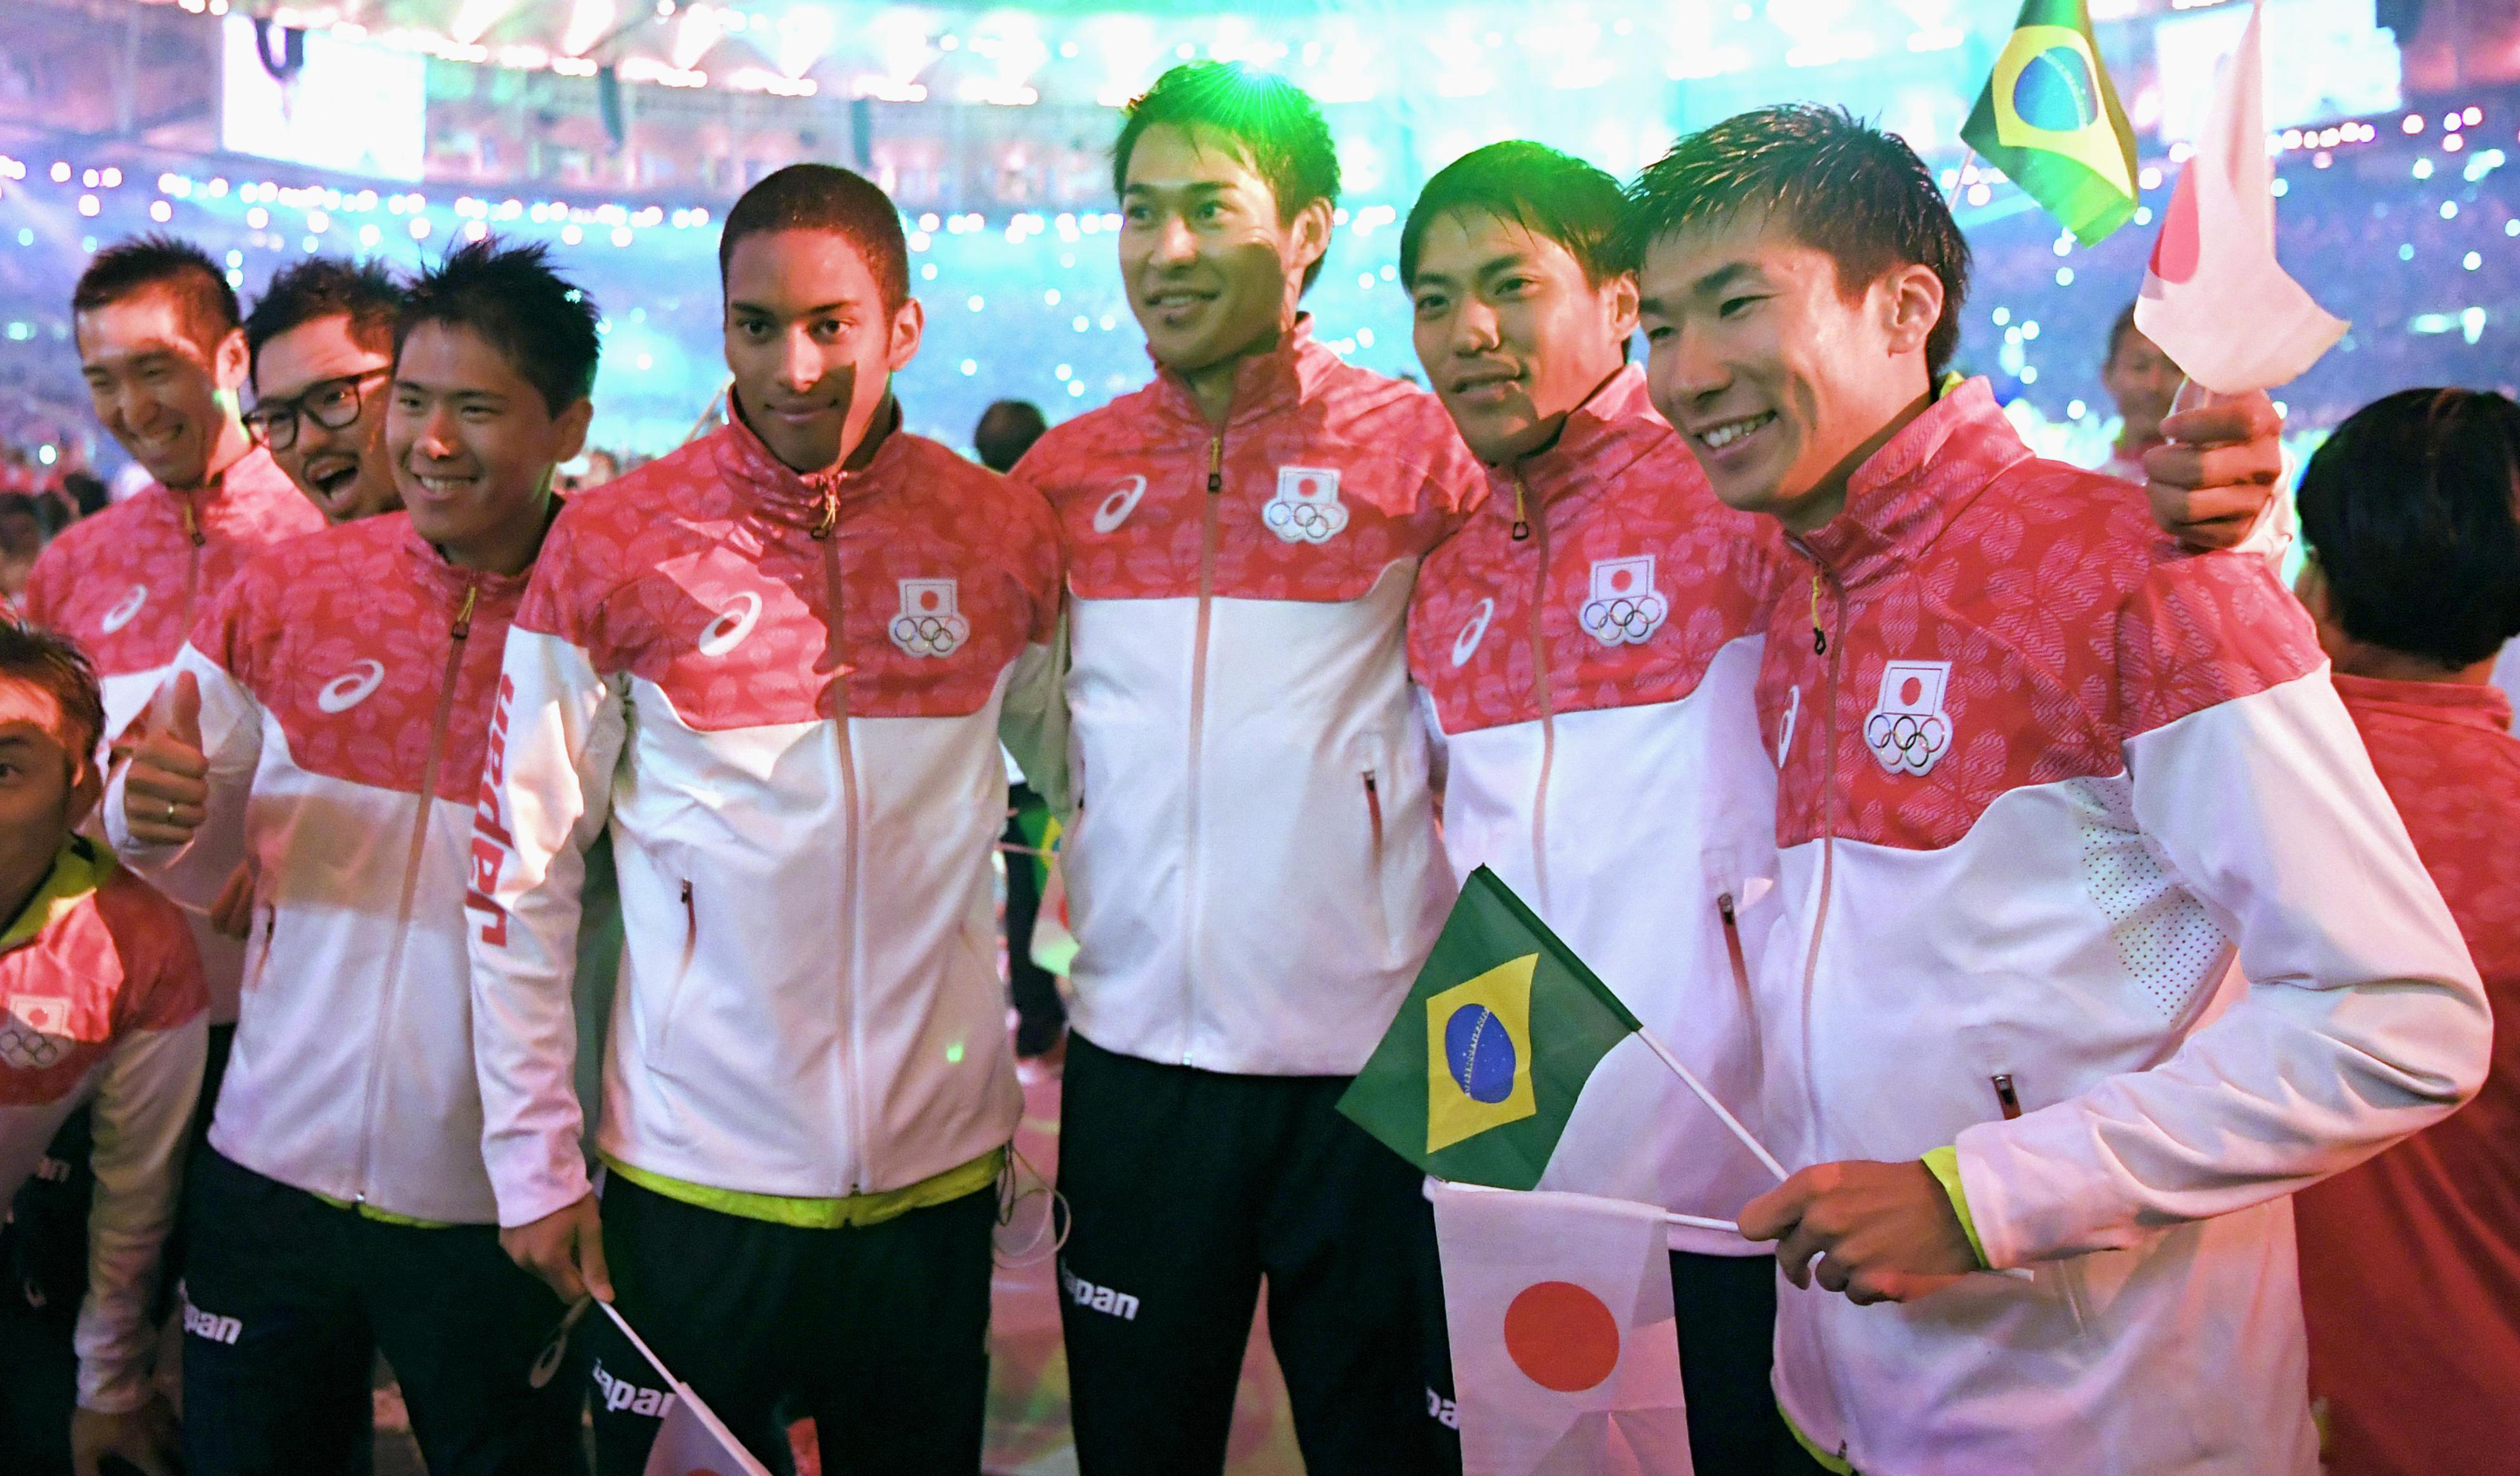 Silver medalists in the men's 4x100-meter relay (from right, Yoshihide Kiryu, Ryota Yamagata, Shota Iizuka and Aska Cambridge) pose with other athletes at the Rio Olympics' closing ceremony on Sunday. |   KYODO